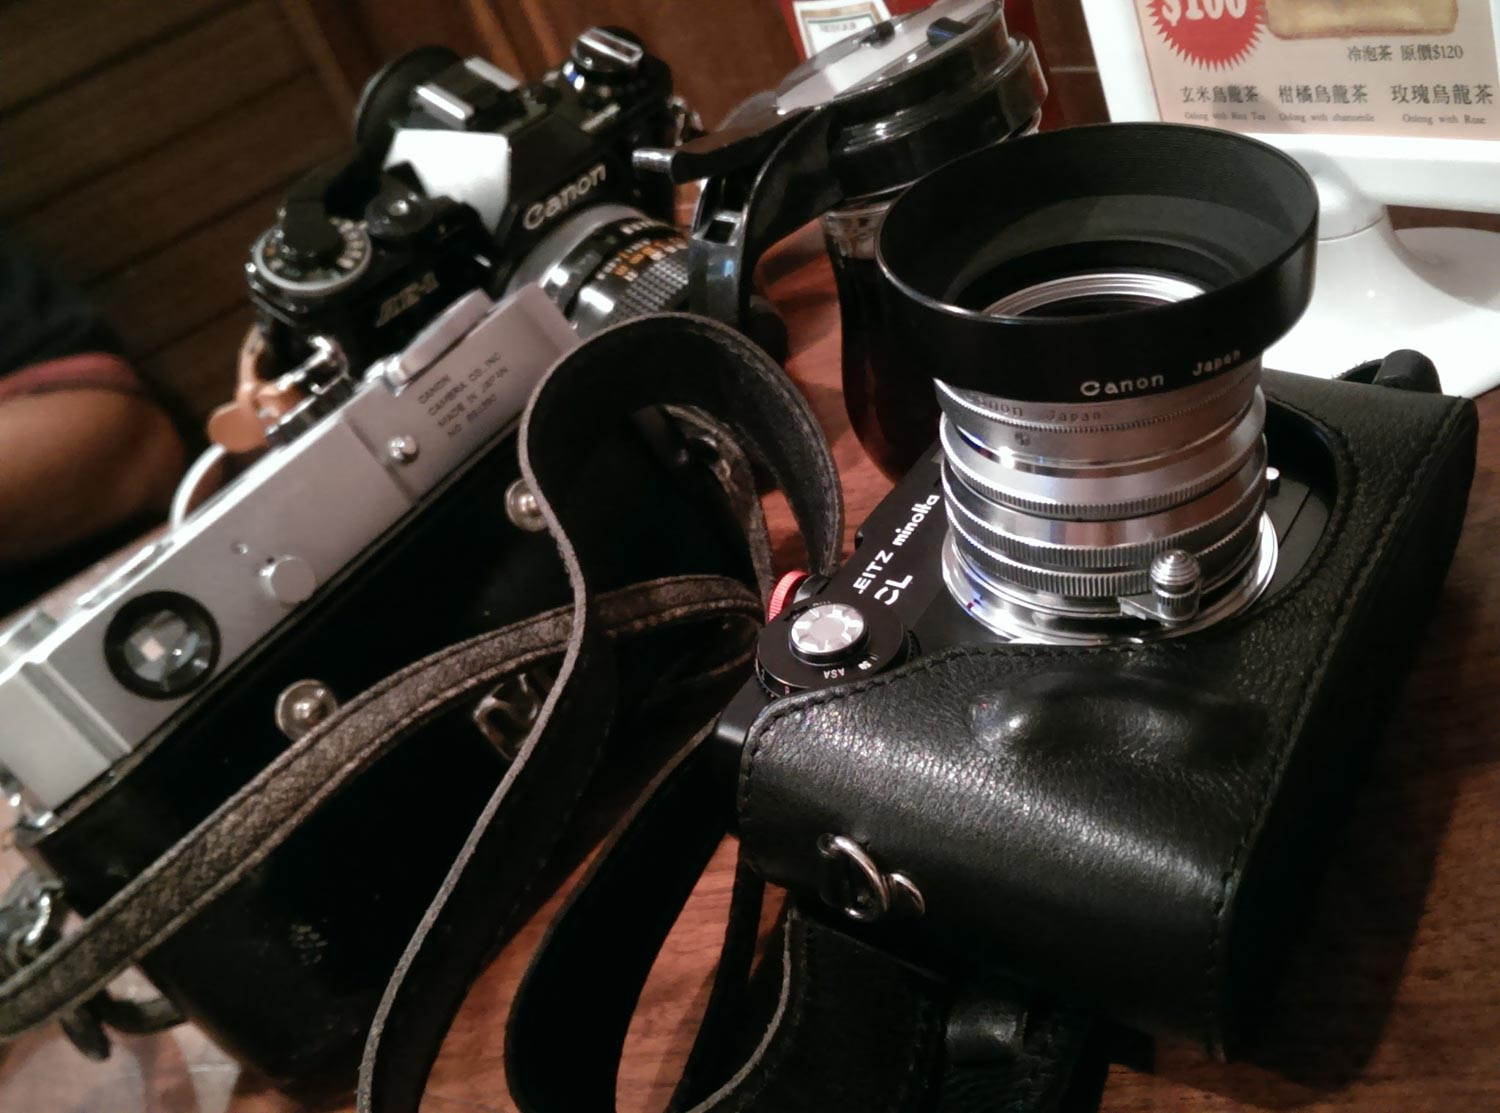 Leica CL and Canon Serenar 50mm f/1.5 LTM lens